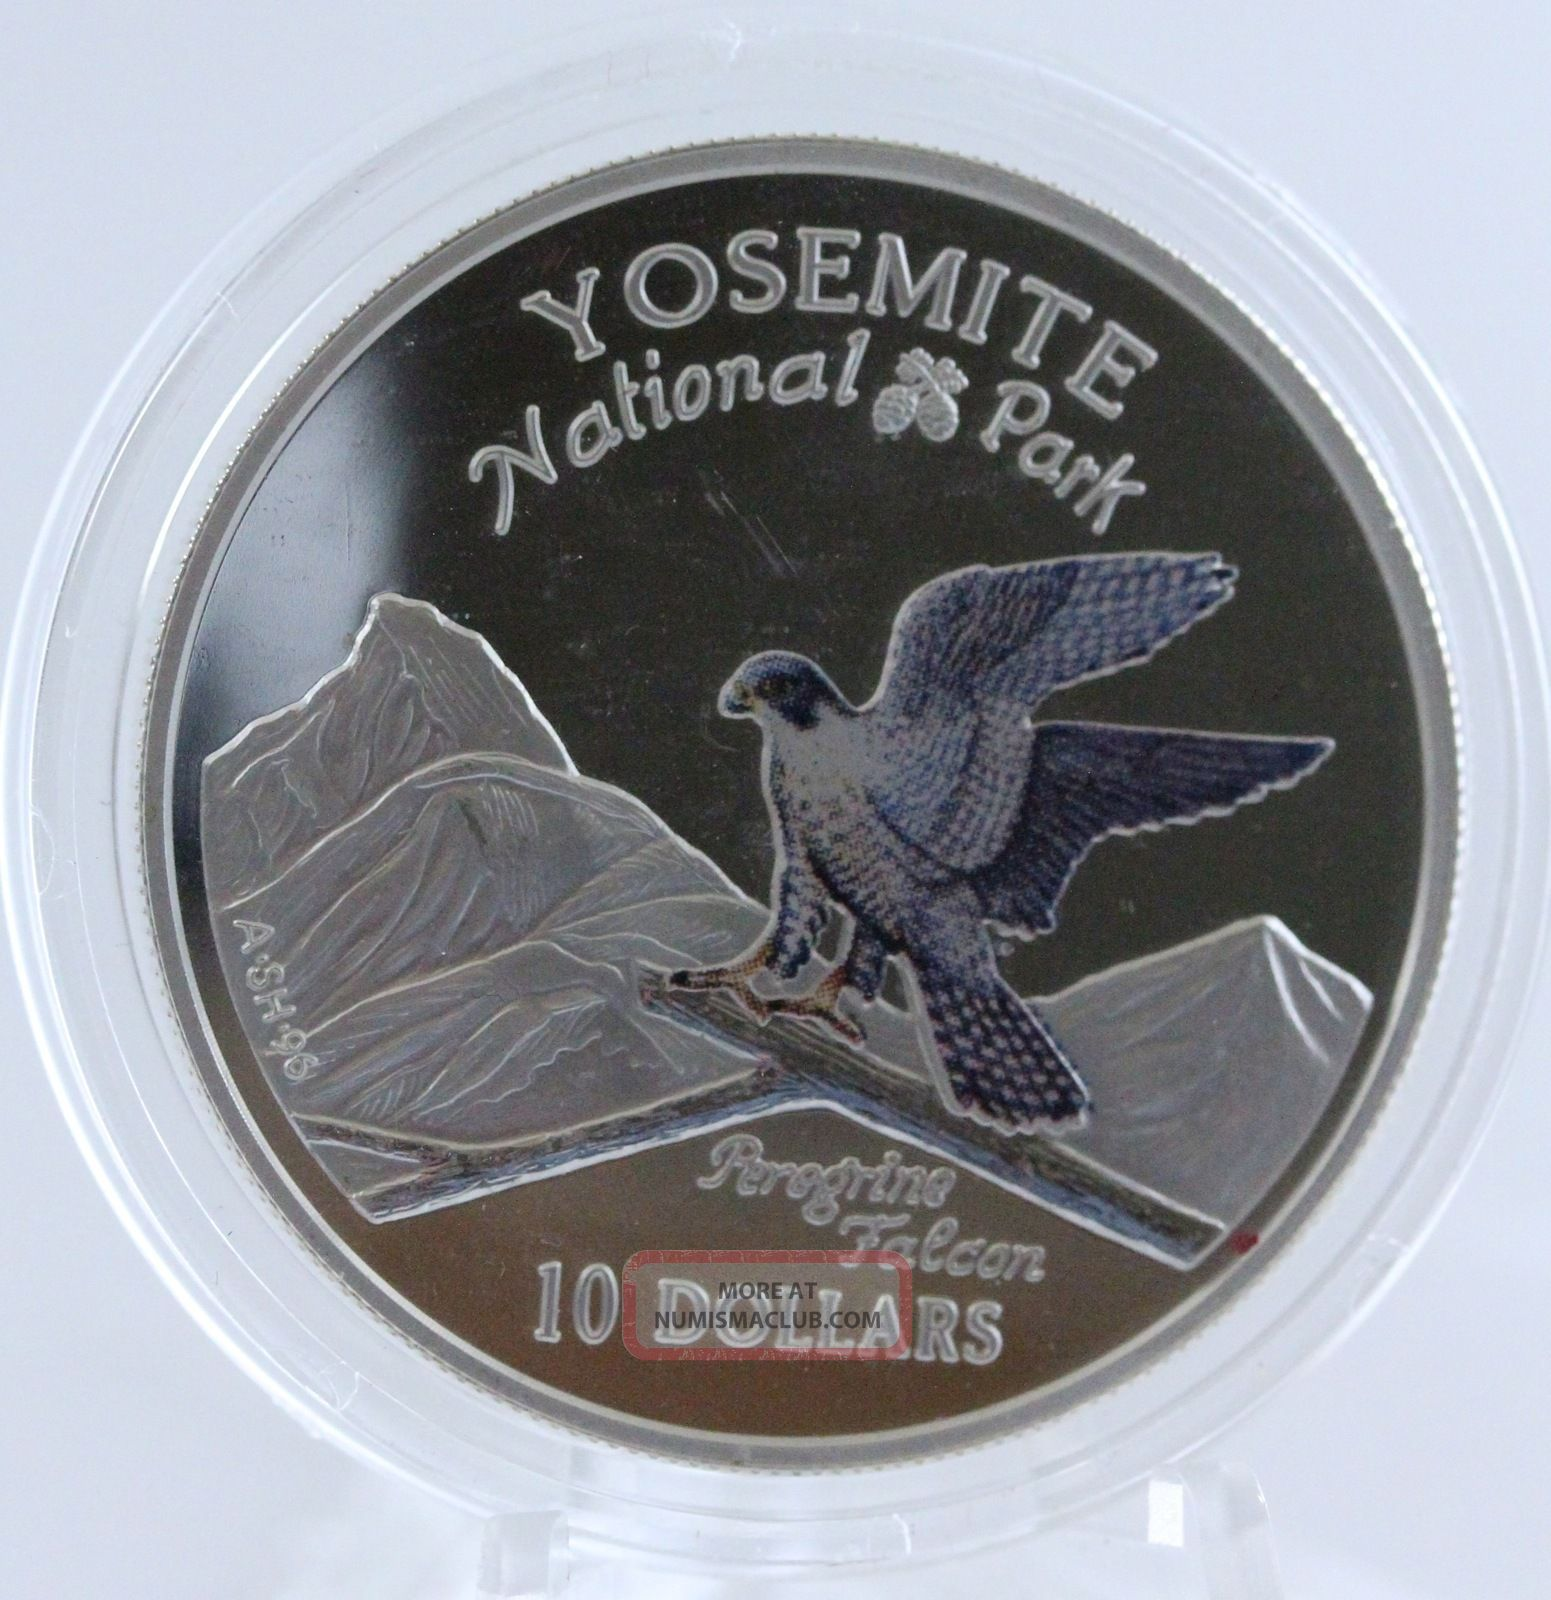 1997 Cook Islands $10 Yosemite National Park Peregrine Falcon Silver Proof Coin Coins: World photo